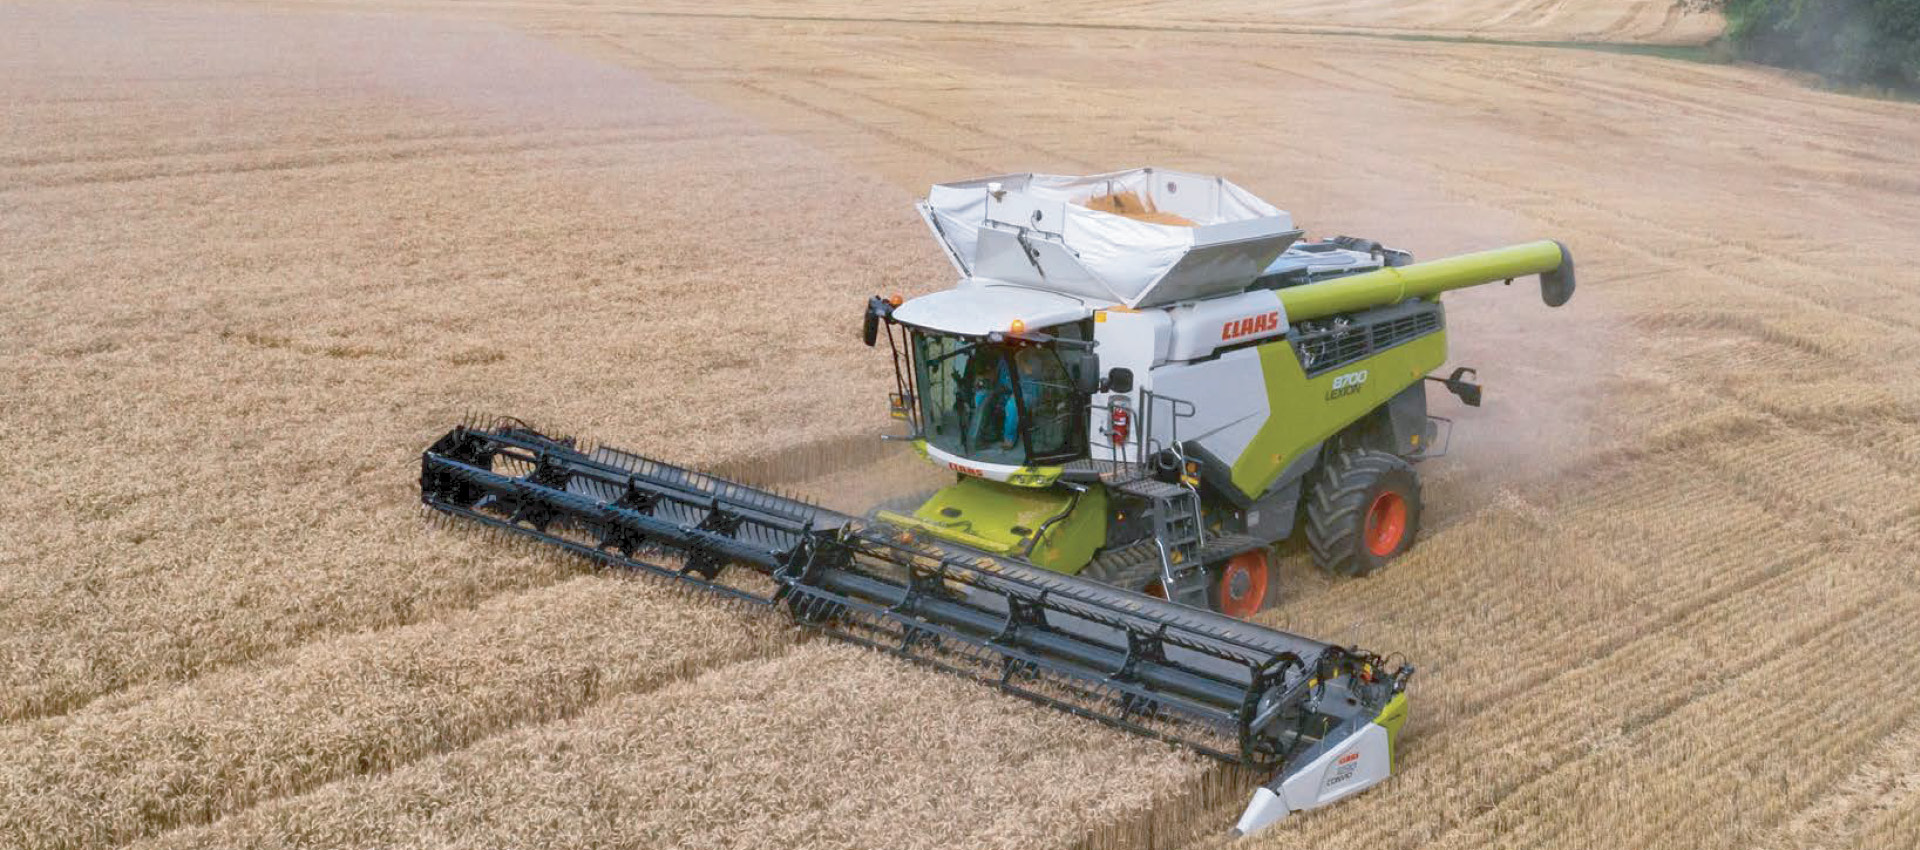 Save today. Pay later | Reserve your new 2022 CLAAS combine today | Learn more